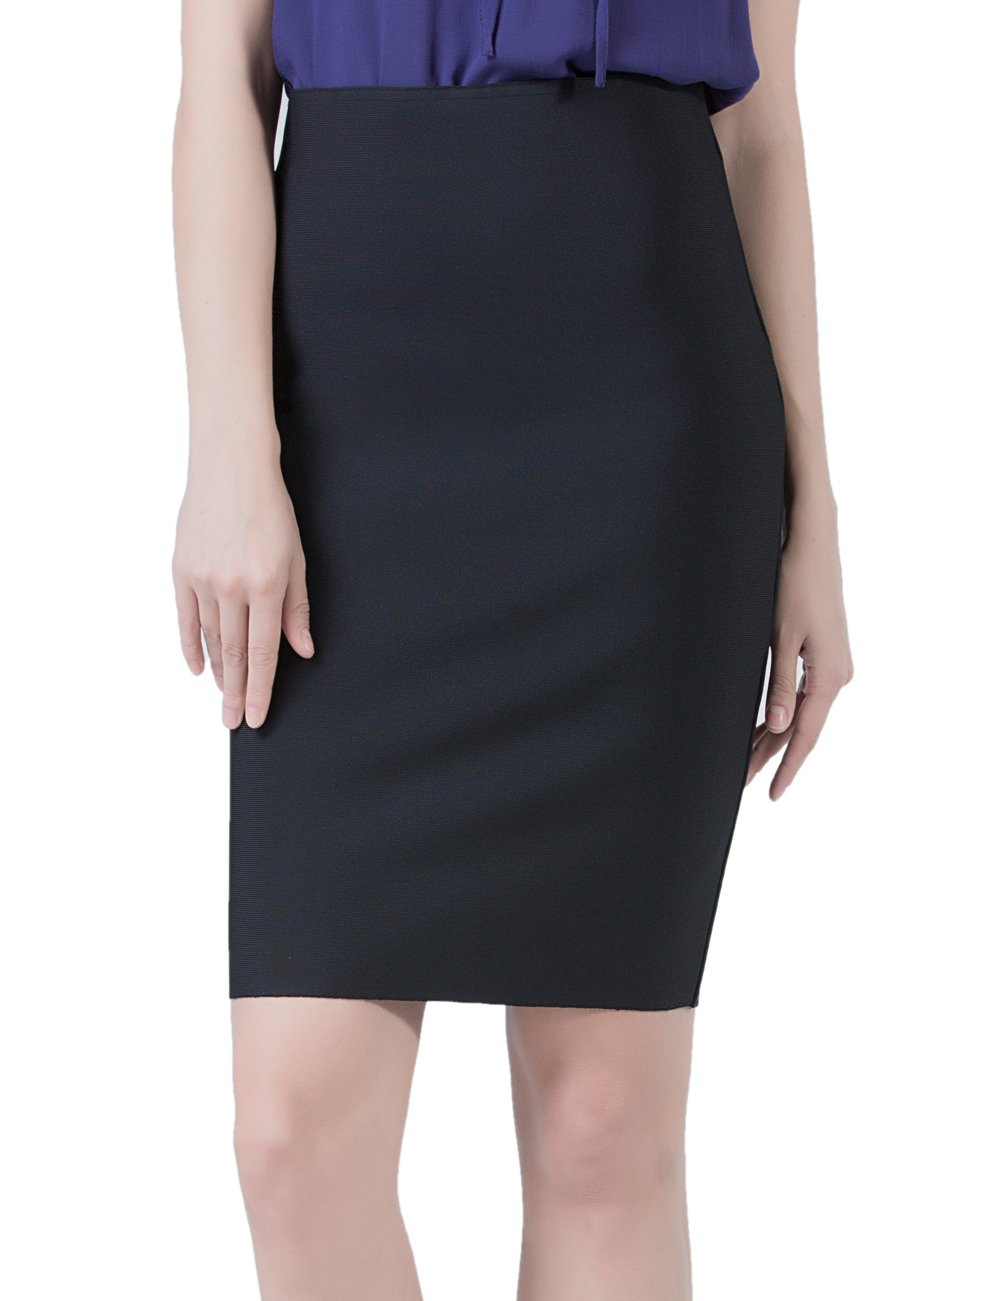 PERHAPS U Pencil Skirts Women's Stretchy High Waist Midi Bodycon Office Skirt(L, Black)